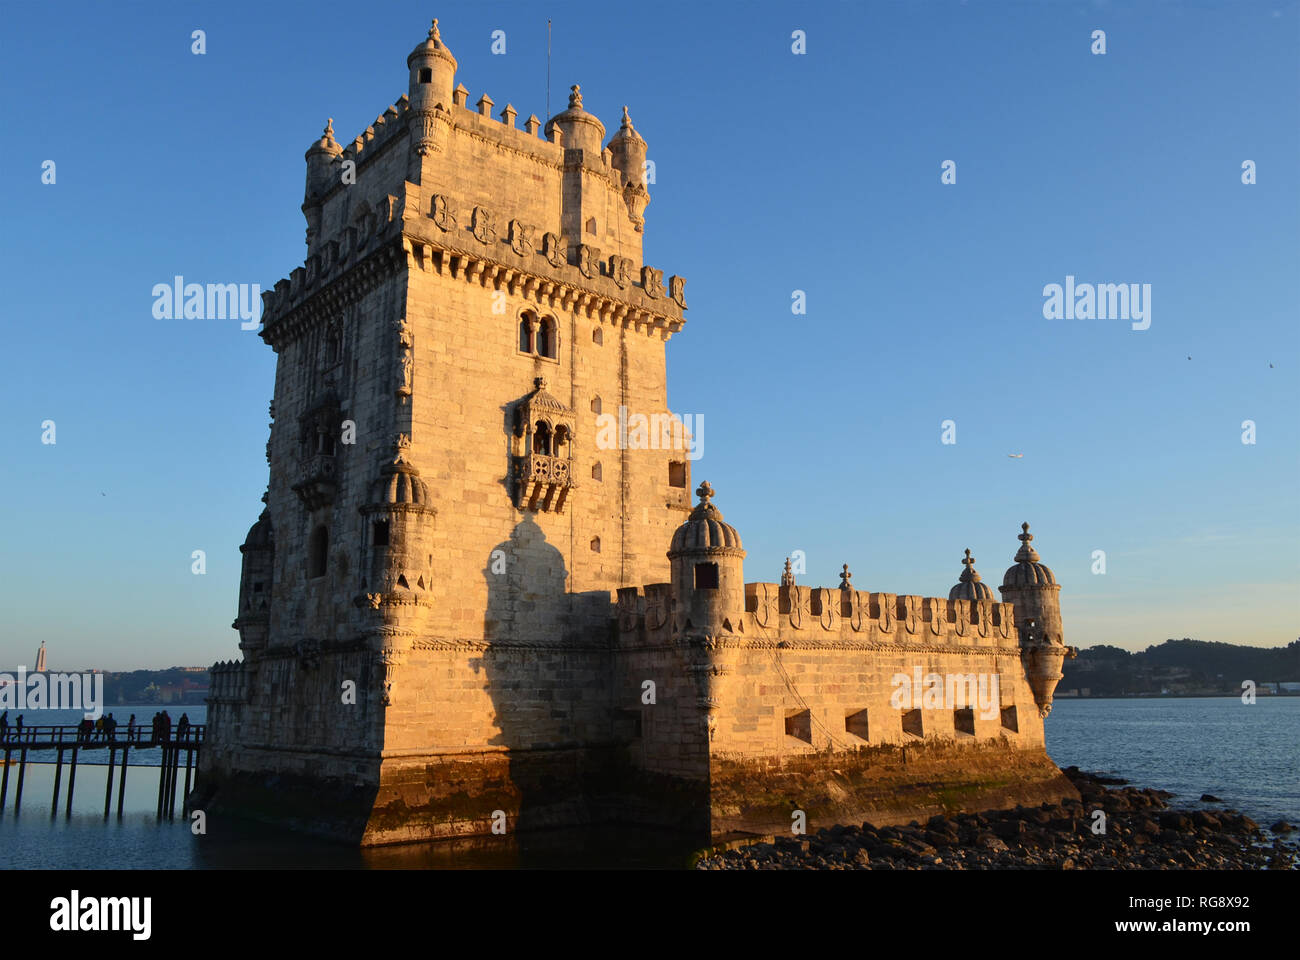 16th century Belem tower, one of the top historical monuments in Lisbon (Portugal), at sunset Stock Photo